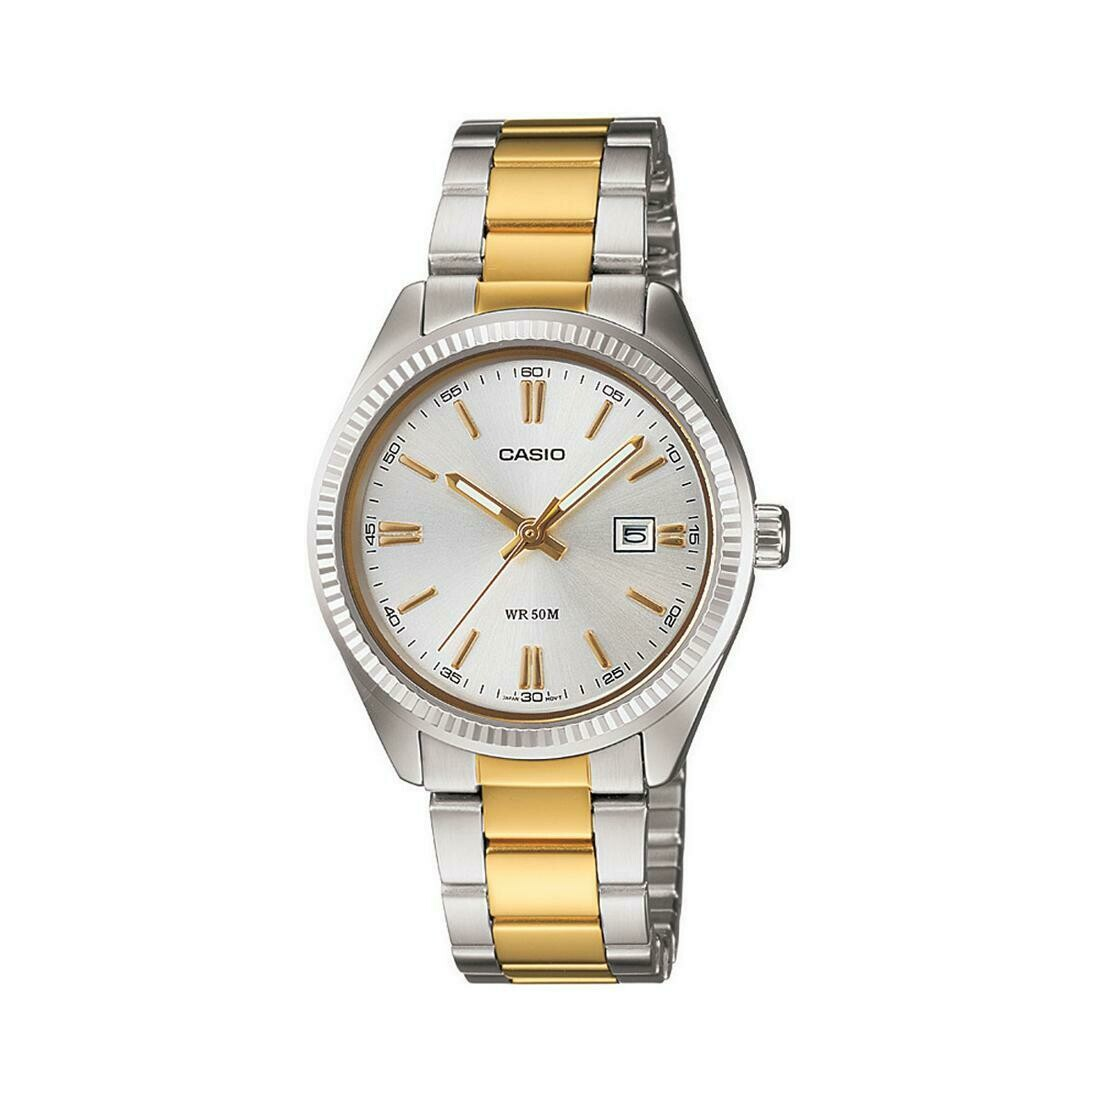 Casio Enticer LTP-1302SG-7AVDF Wrist Watch For Women - Silver and Gold